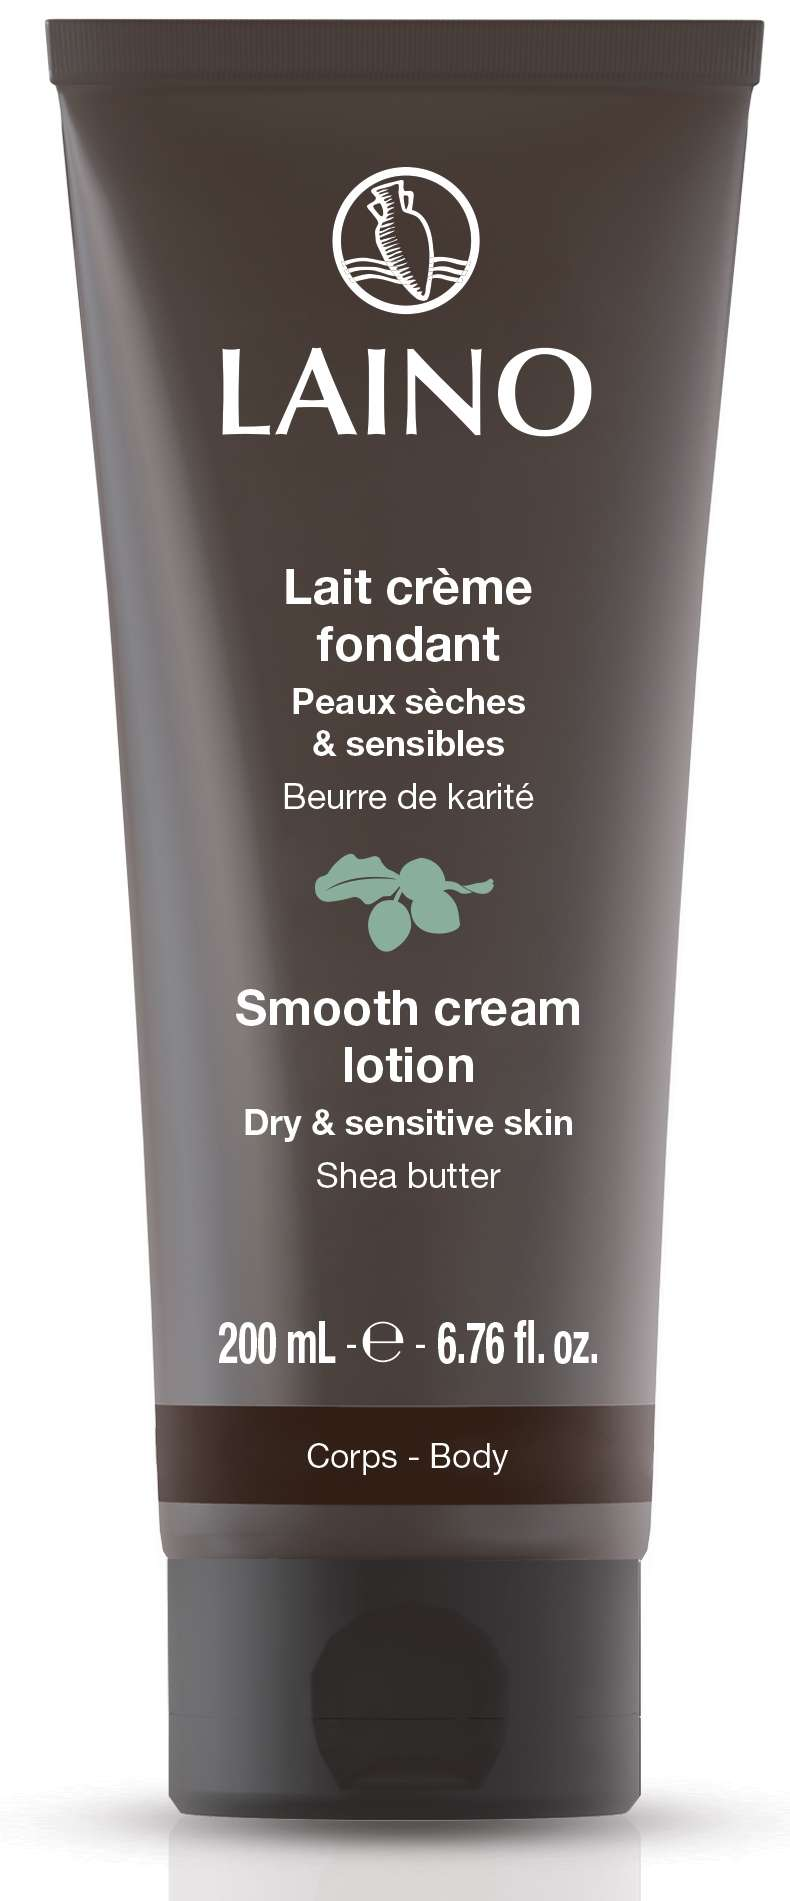 Smooth cream body lotion Shea butter